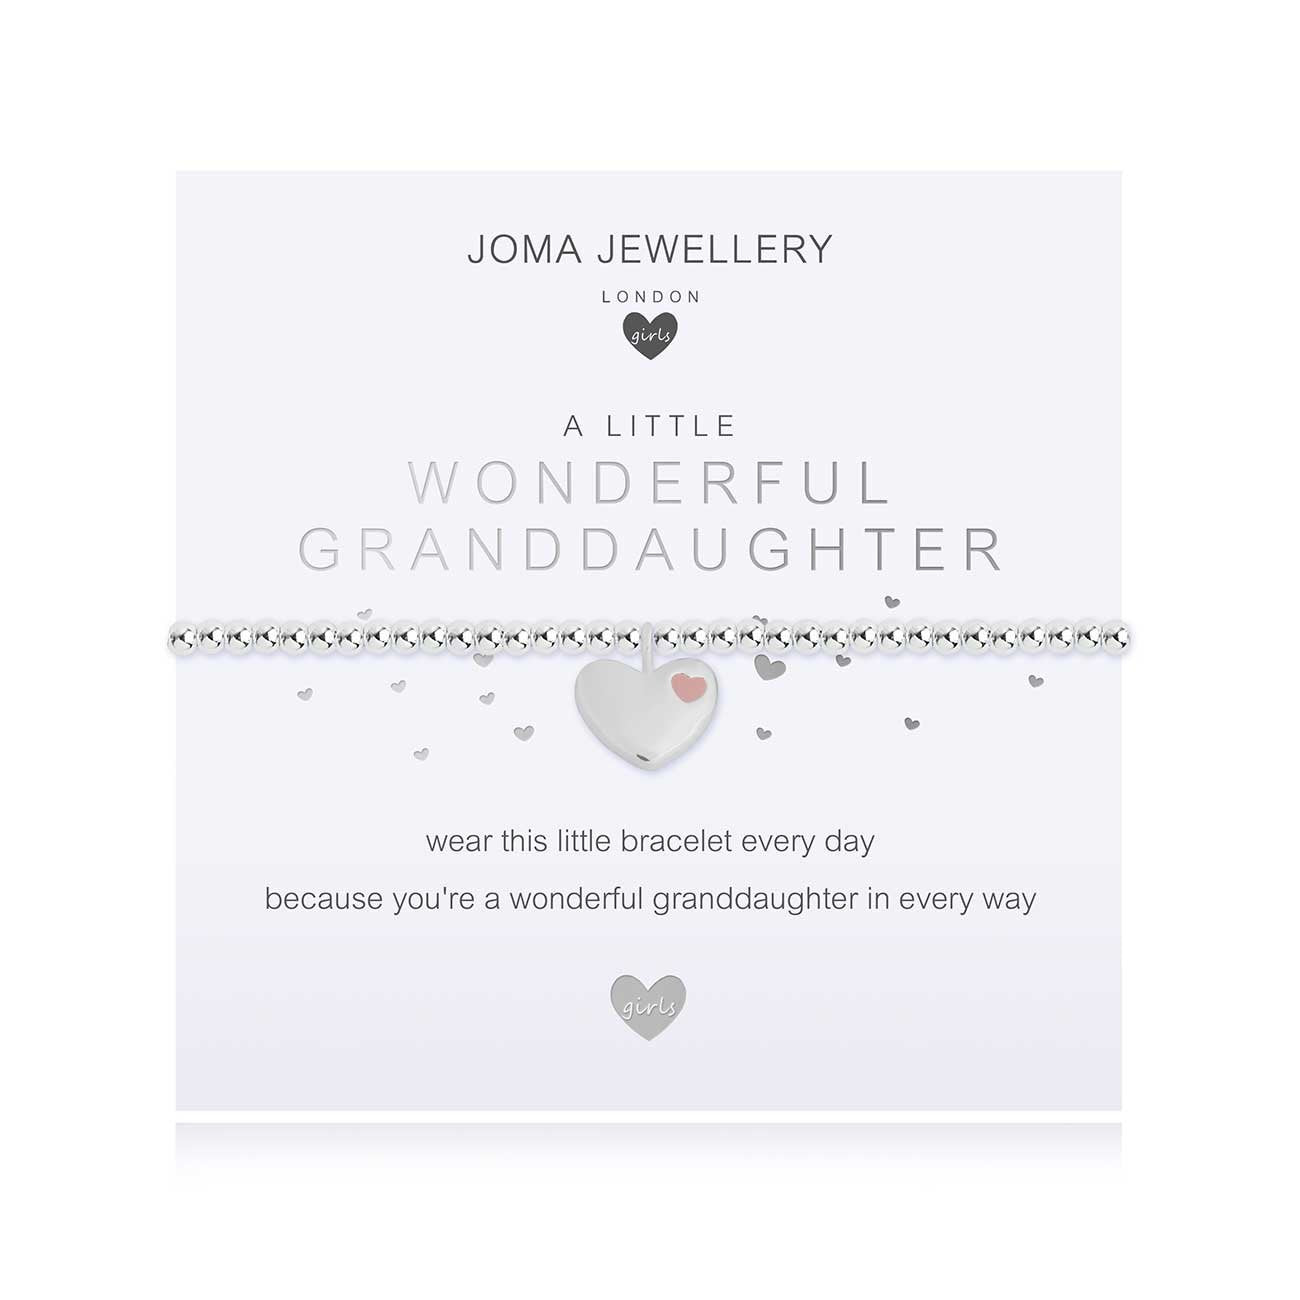 Joma Jewellery Children's a little Wonderful Granddaughter Bracelet | More Than Just A Gift | Authorised Joma Jewellery Stockist| More Than Just A Gift